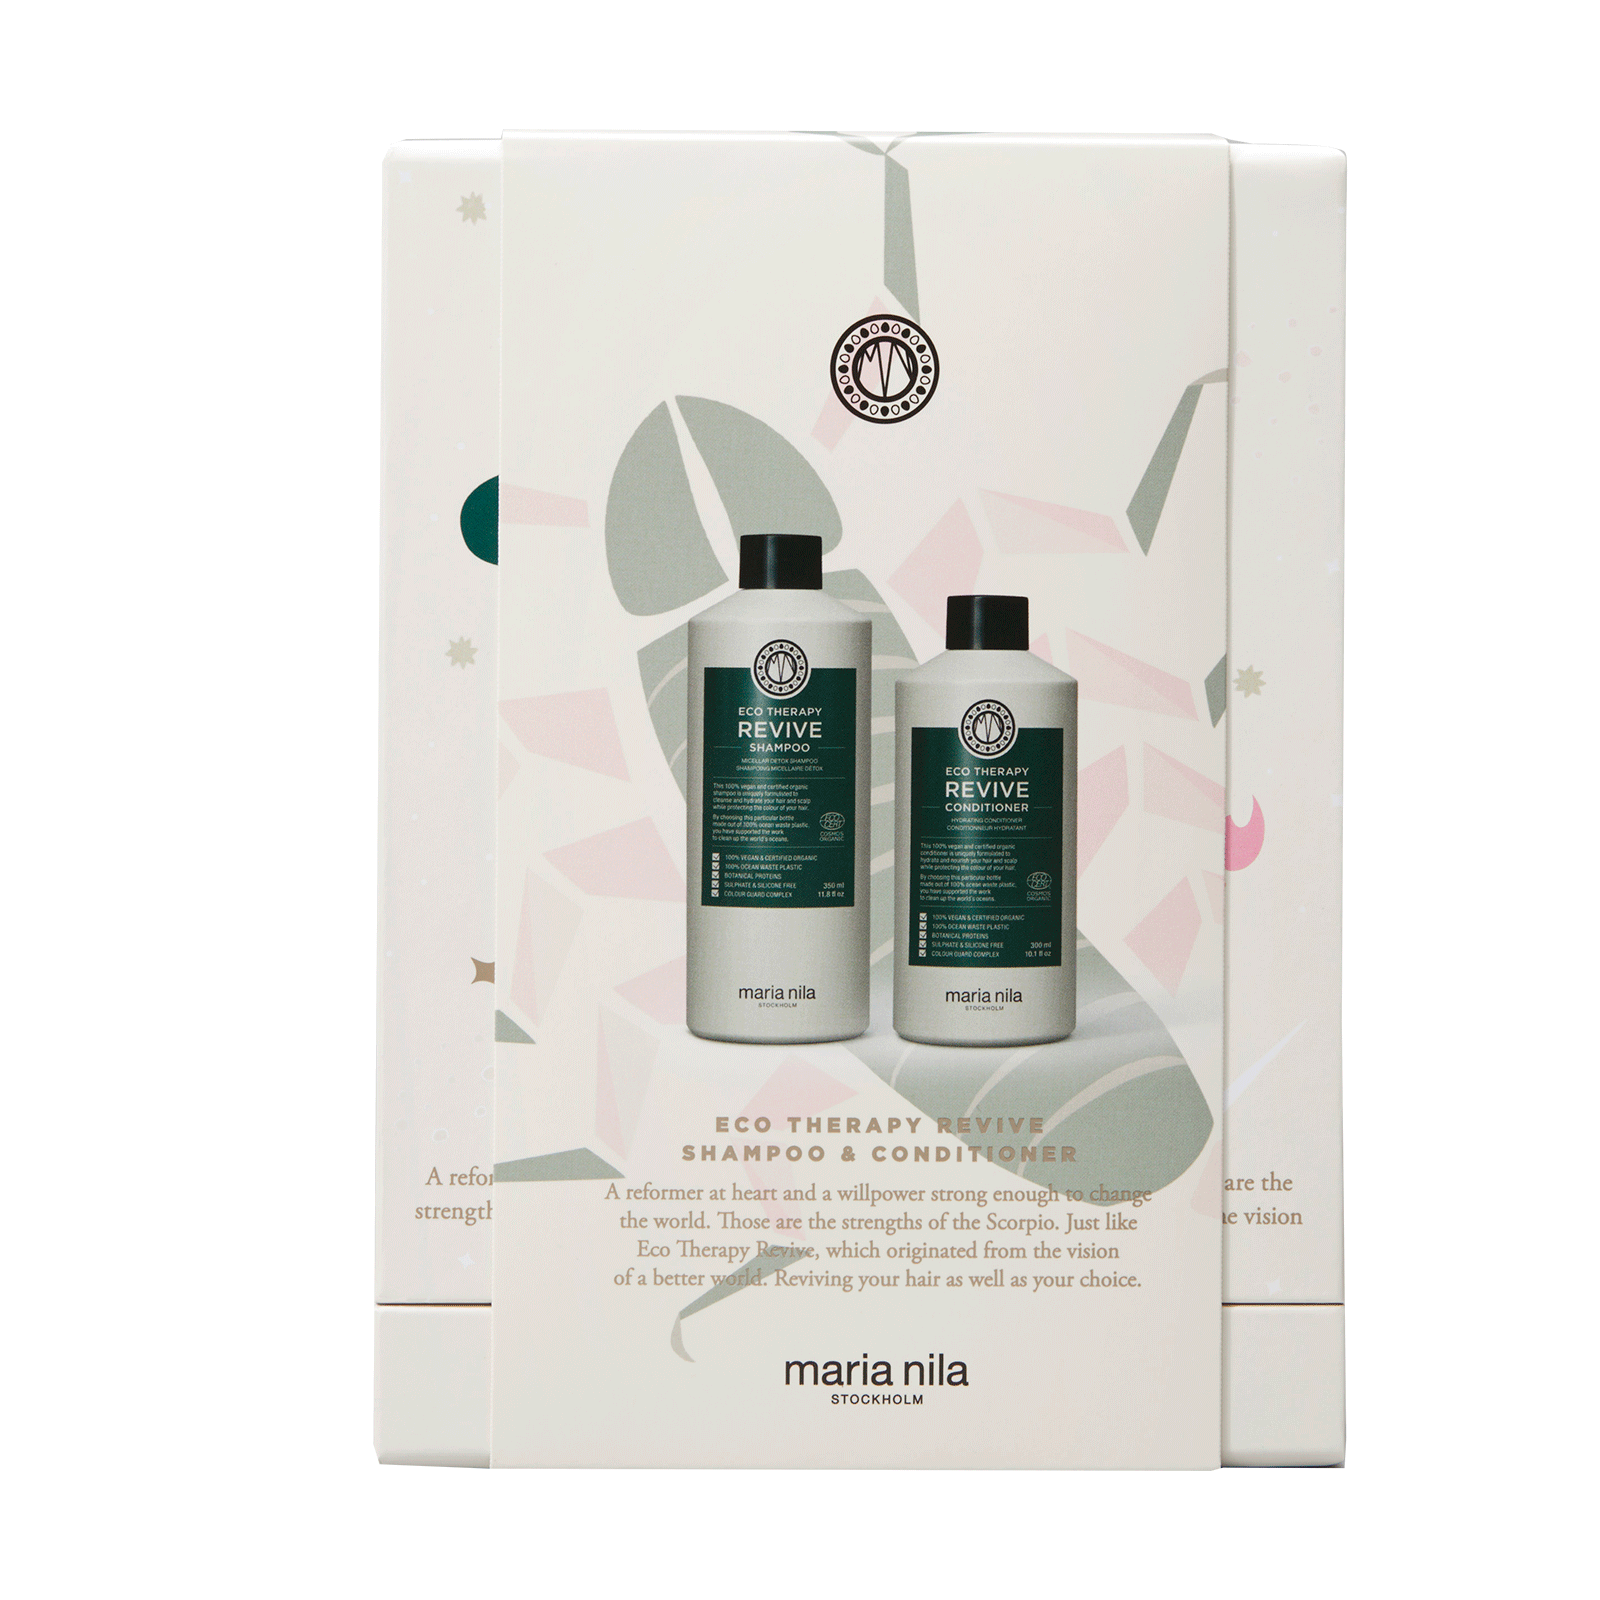 Eco Therapy Revive Holiday Set